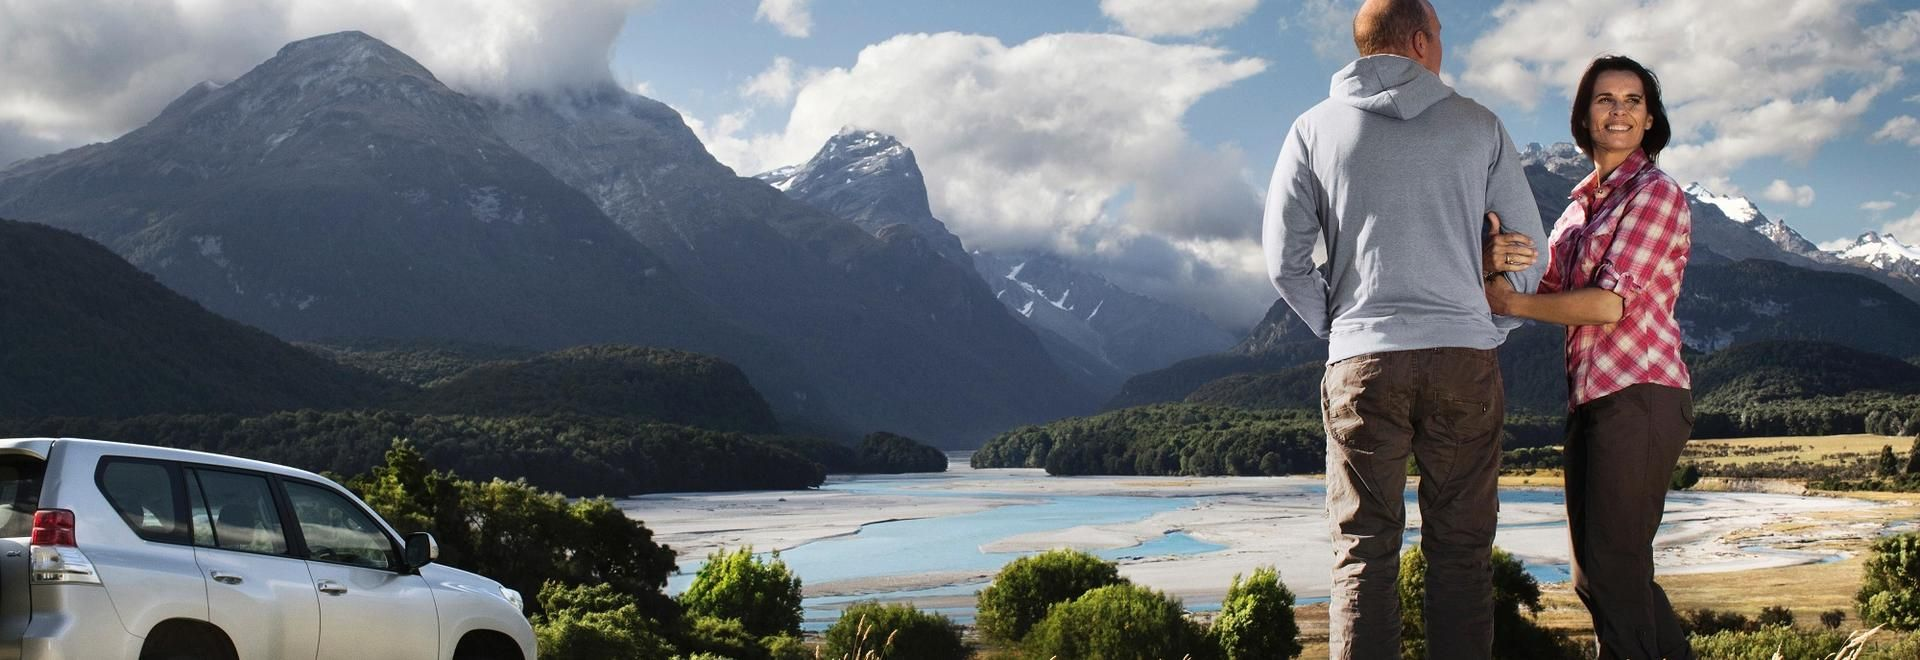 The New Zealand holiday of your dream starts here